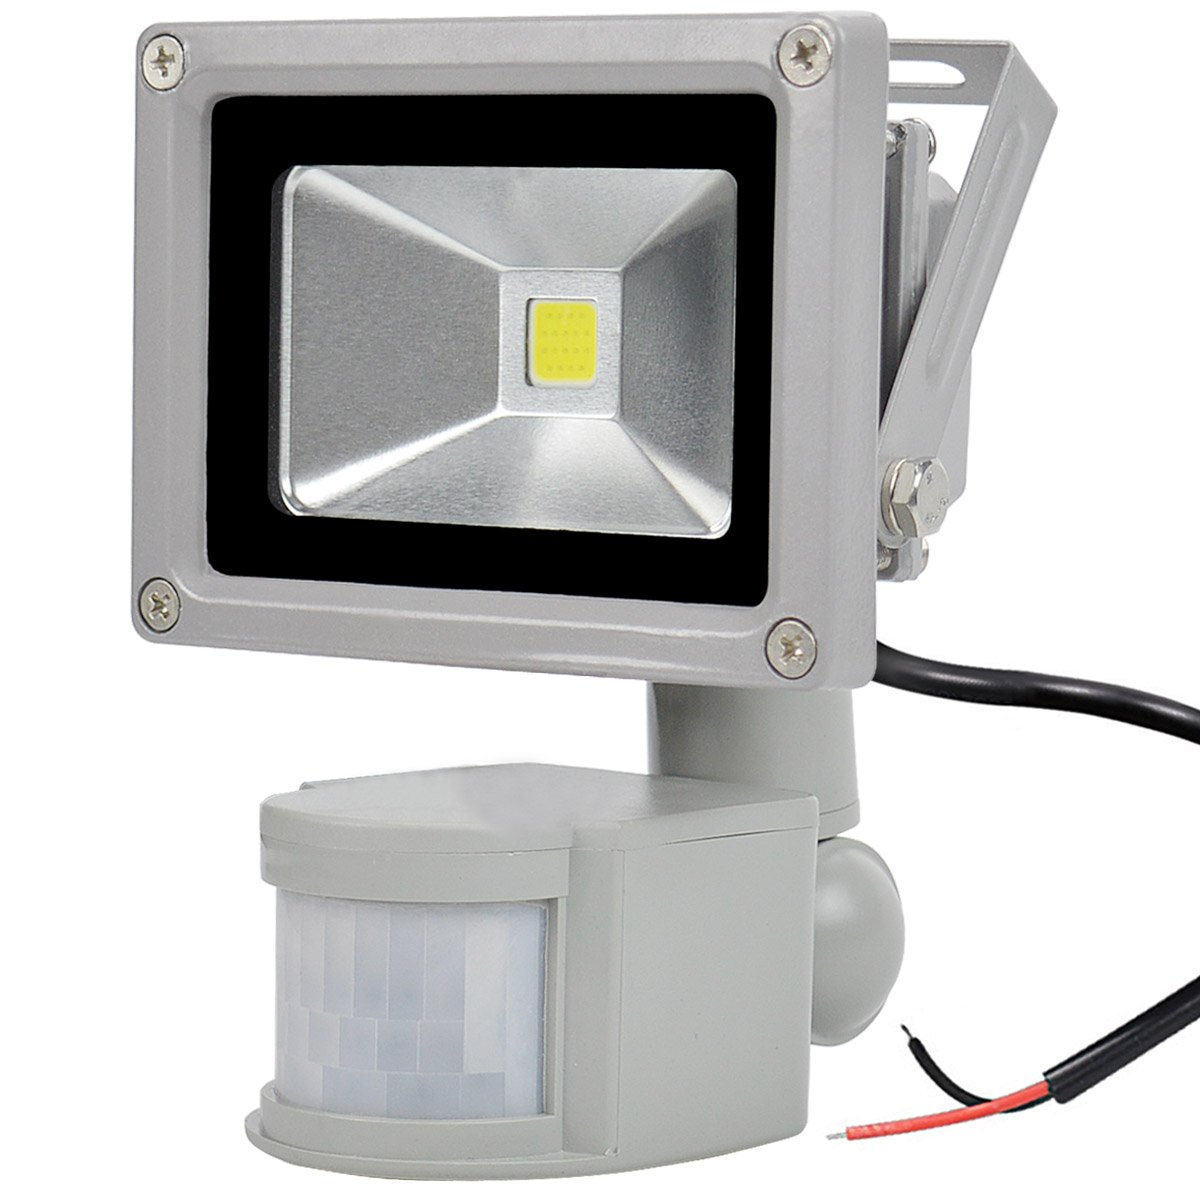 Glw 12v Ac Or Dc Led Motion Sensor Flood Light10w Mini Ip65 Couk O View Topic Stair Lights Require Wiring In Series Waterproof Outdoor Light900lm6000kdaylight White Security Light With Pir